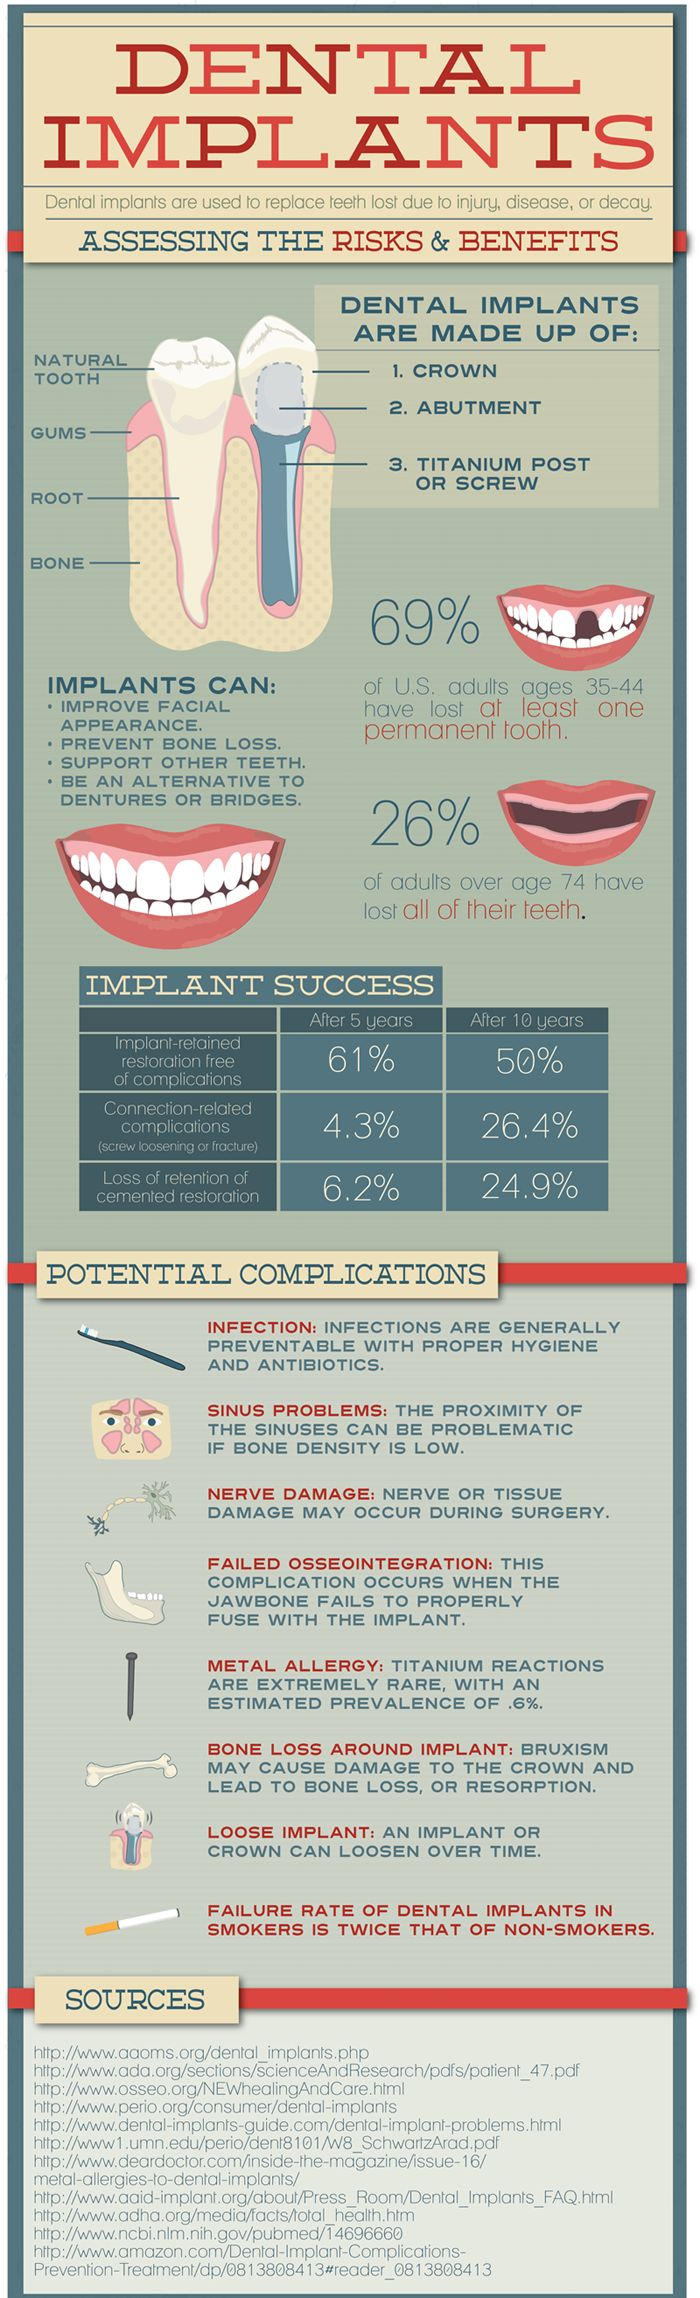 Prisma Dental Services  #Dentalimplants  have become a popular and successful option used by #dental  professionals for restoring missing, severely damaged or diseased #teeth . They are usually made from titanium and resemble an actual #tooth root.  http://prismadental.com/services/dental-implants/